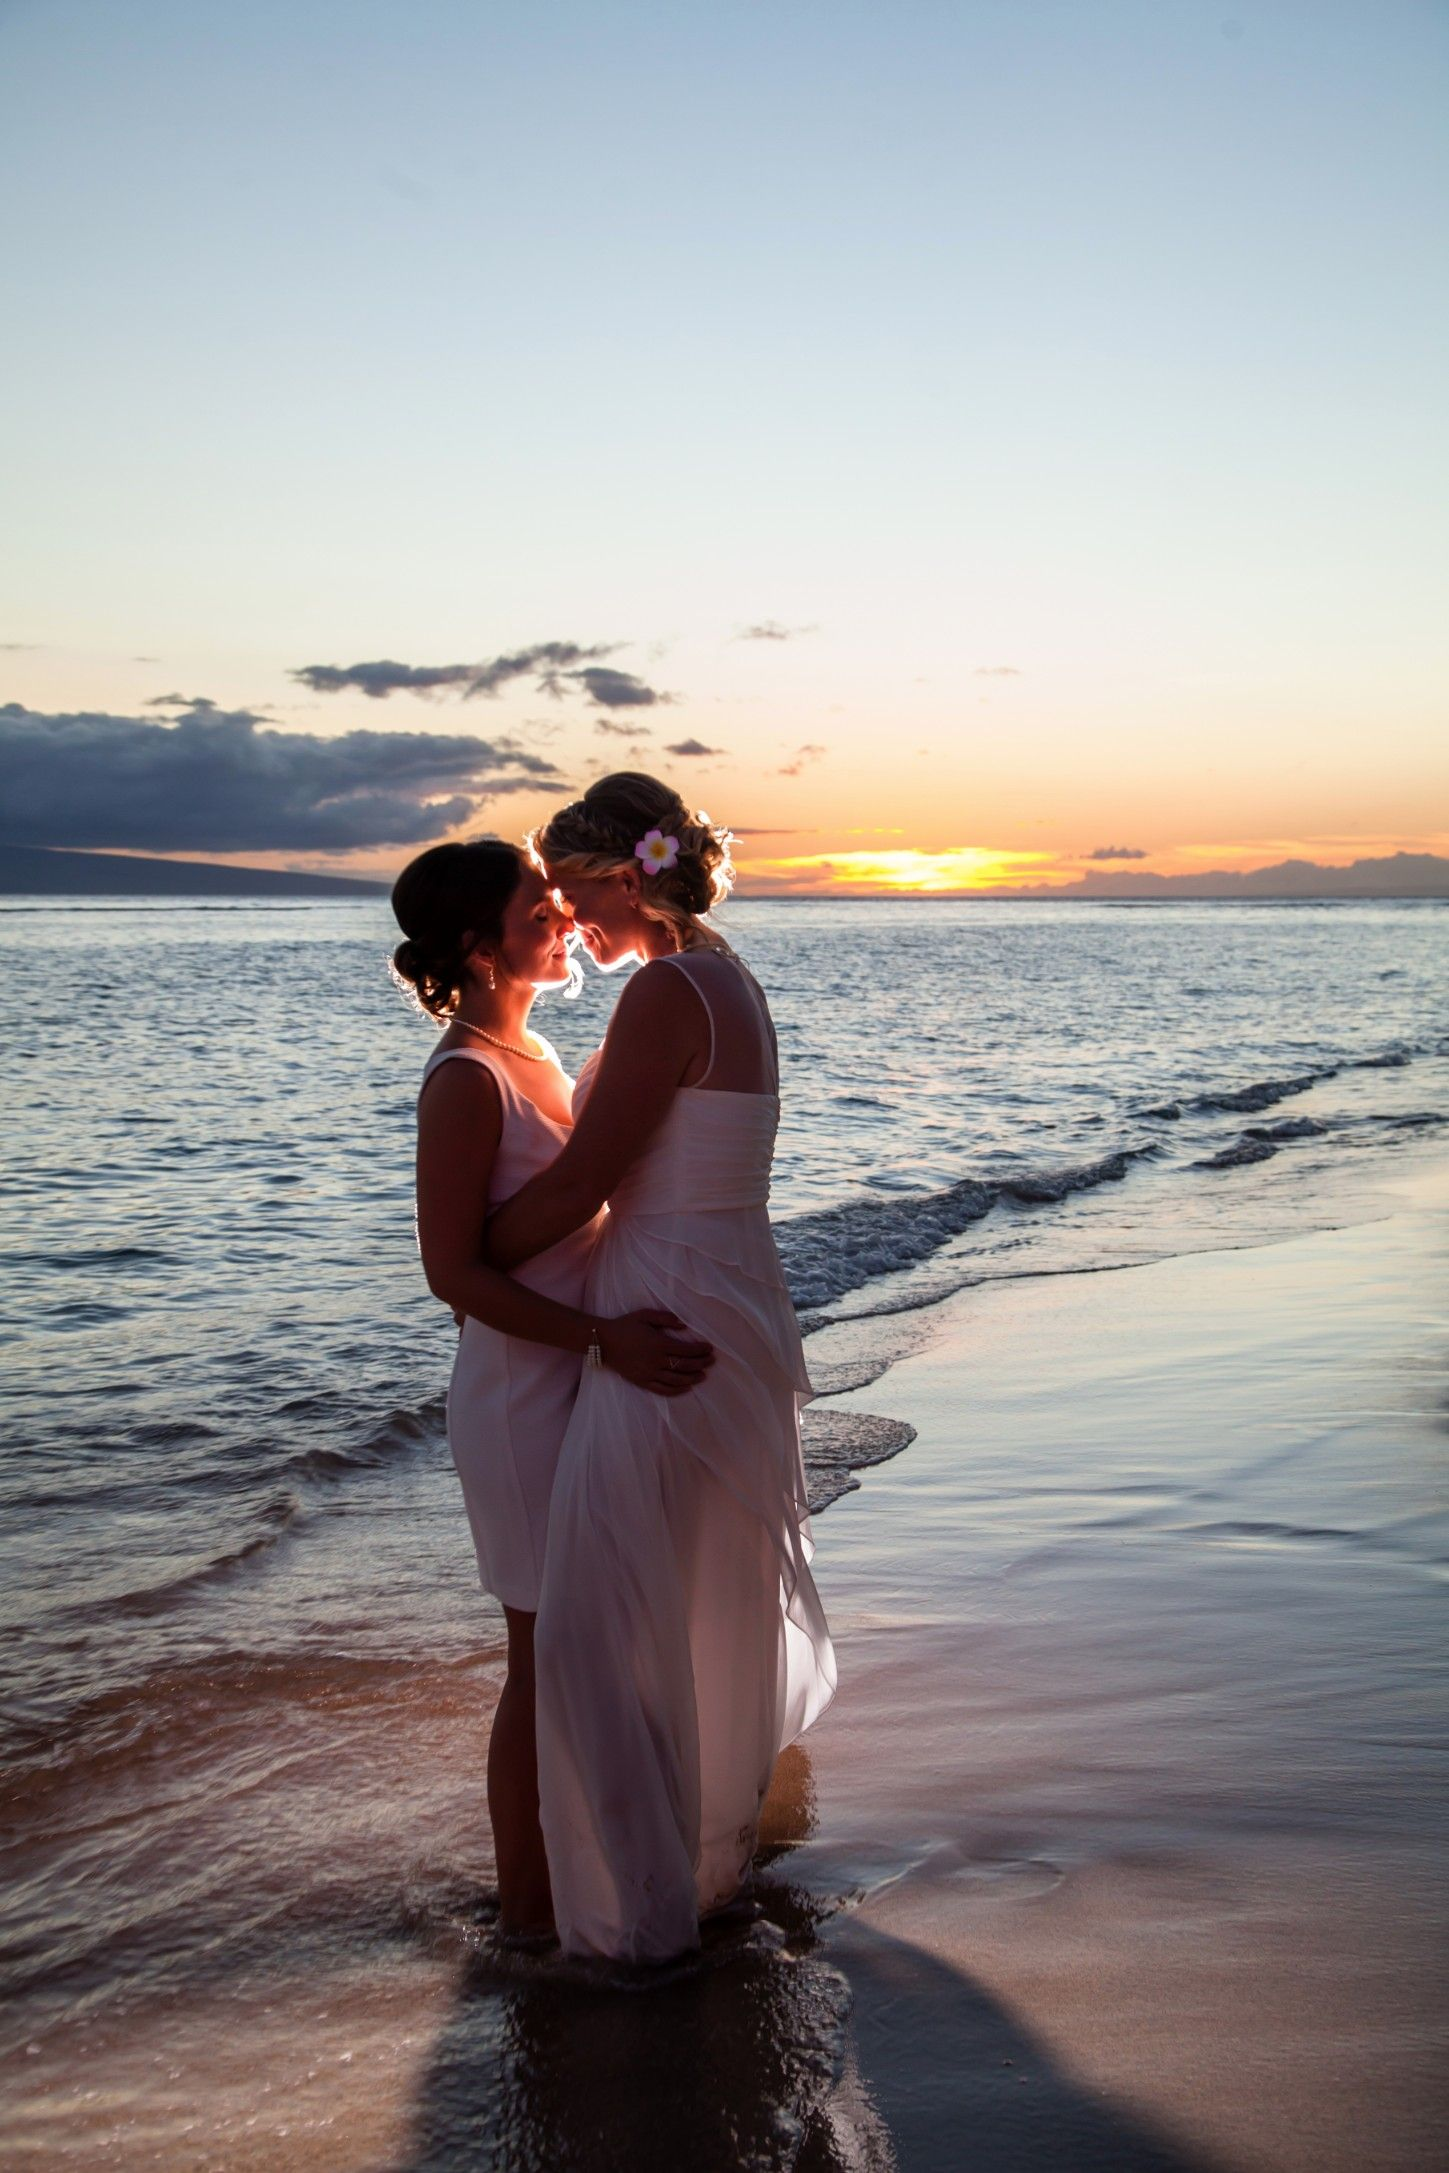 Sexy lesbian wedding photography on beach in Hawaii. #samesex #lesbian #wedding #beach #sexy